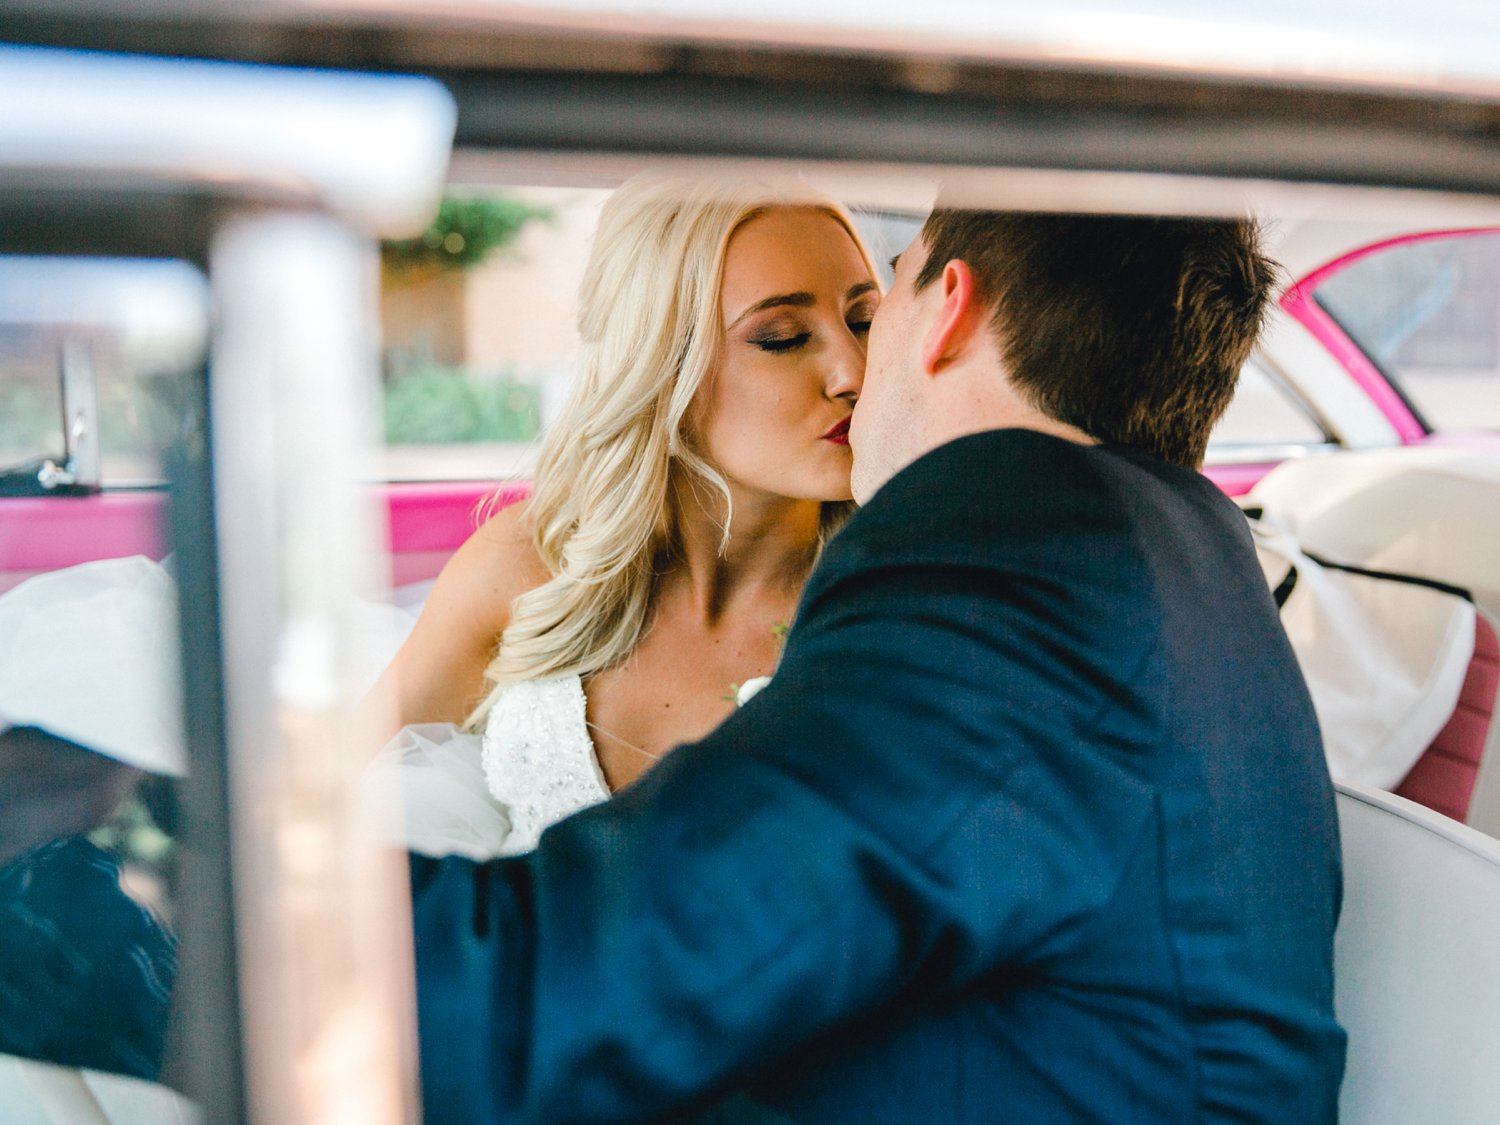 MADI_AND_WILL_STEPHENS_ALLEEJ_LUBBOCK_PHOTOGRAPHER_TEXAS+TECH+FRAZIER_ALUMNI0130.jpg